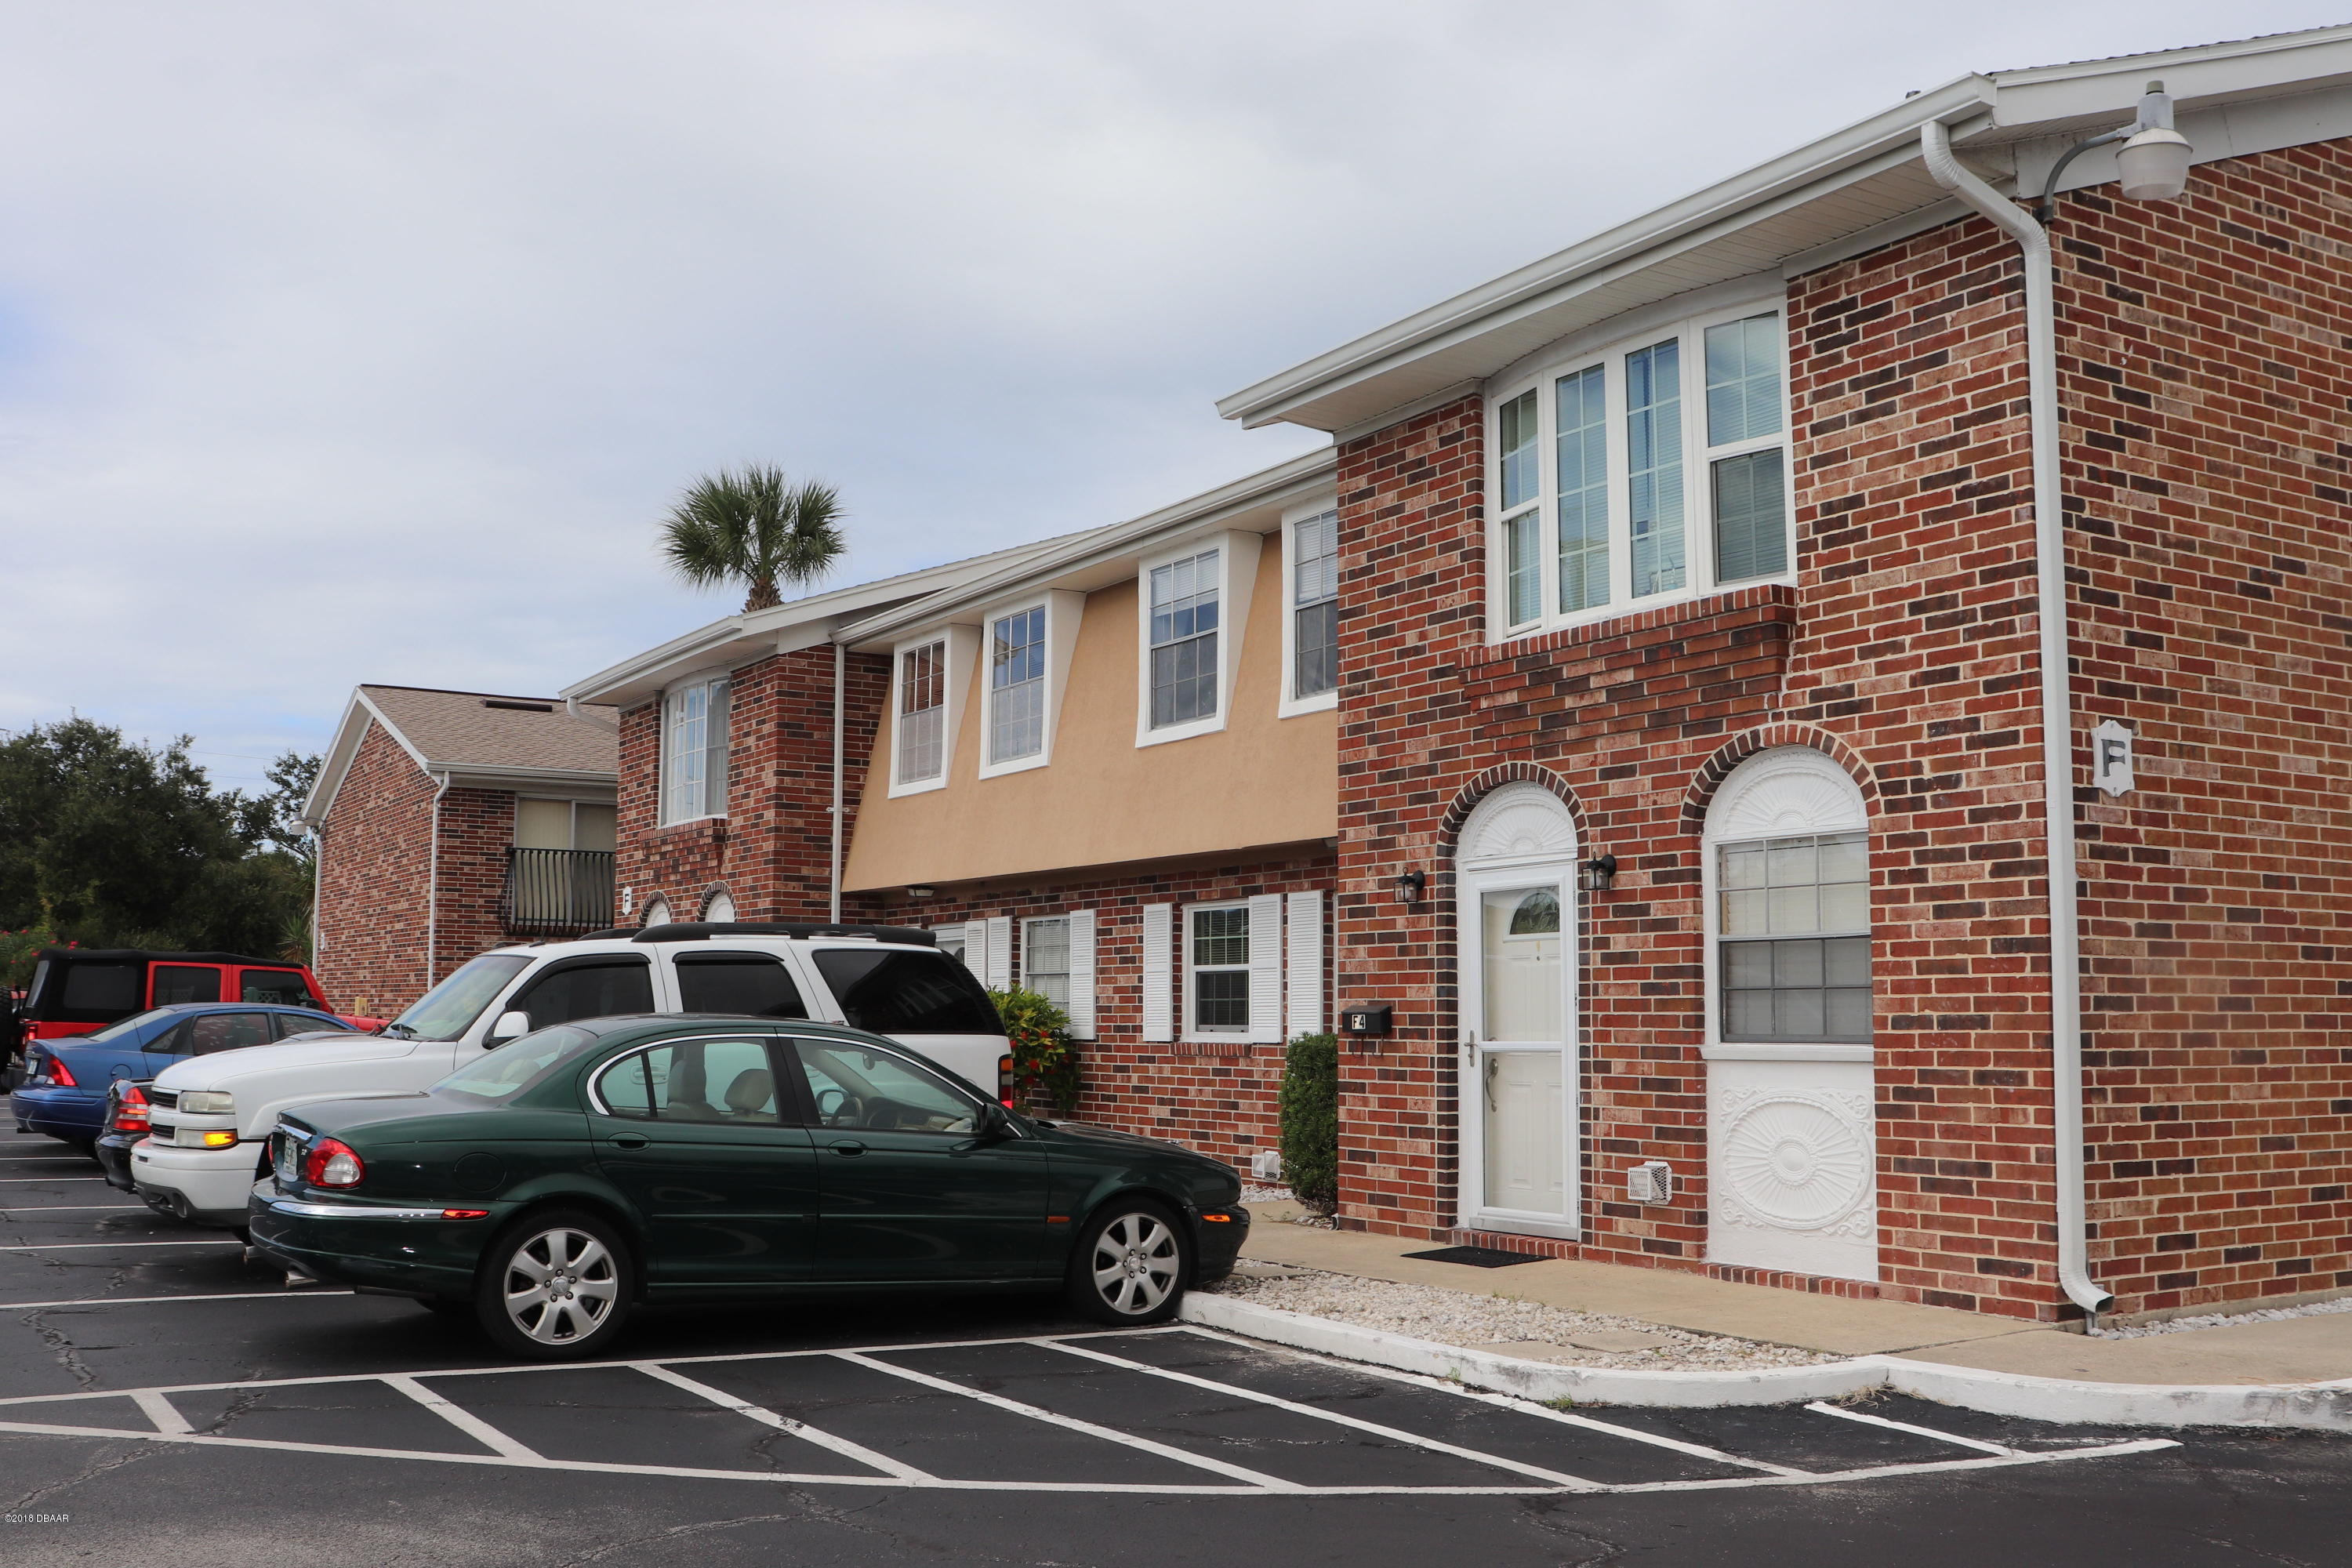 2200 S Palmetto Avenue, one of homes for sale in South Daytona